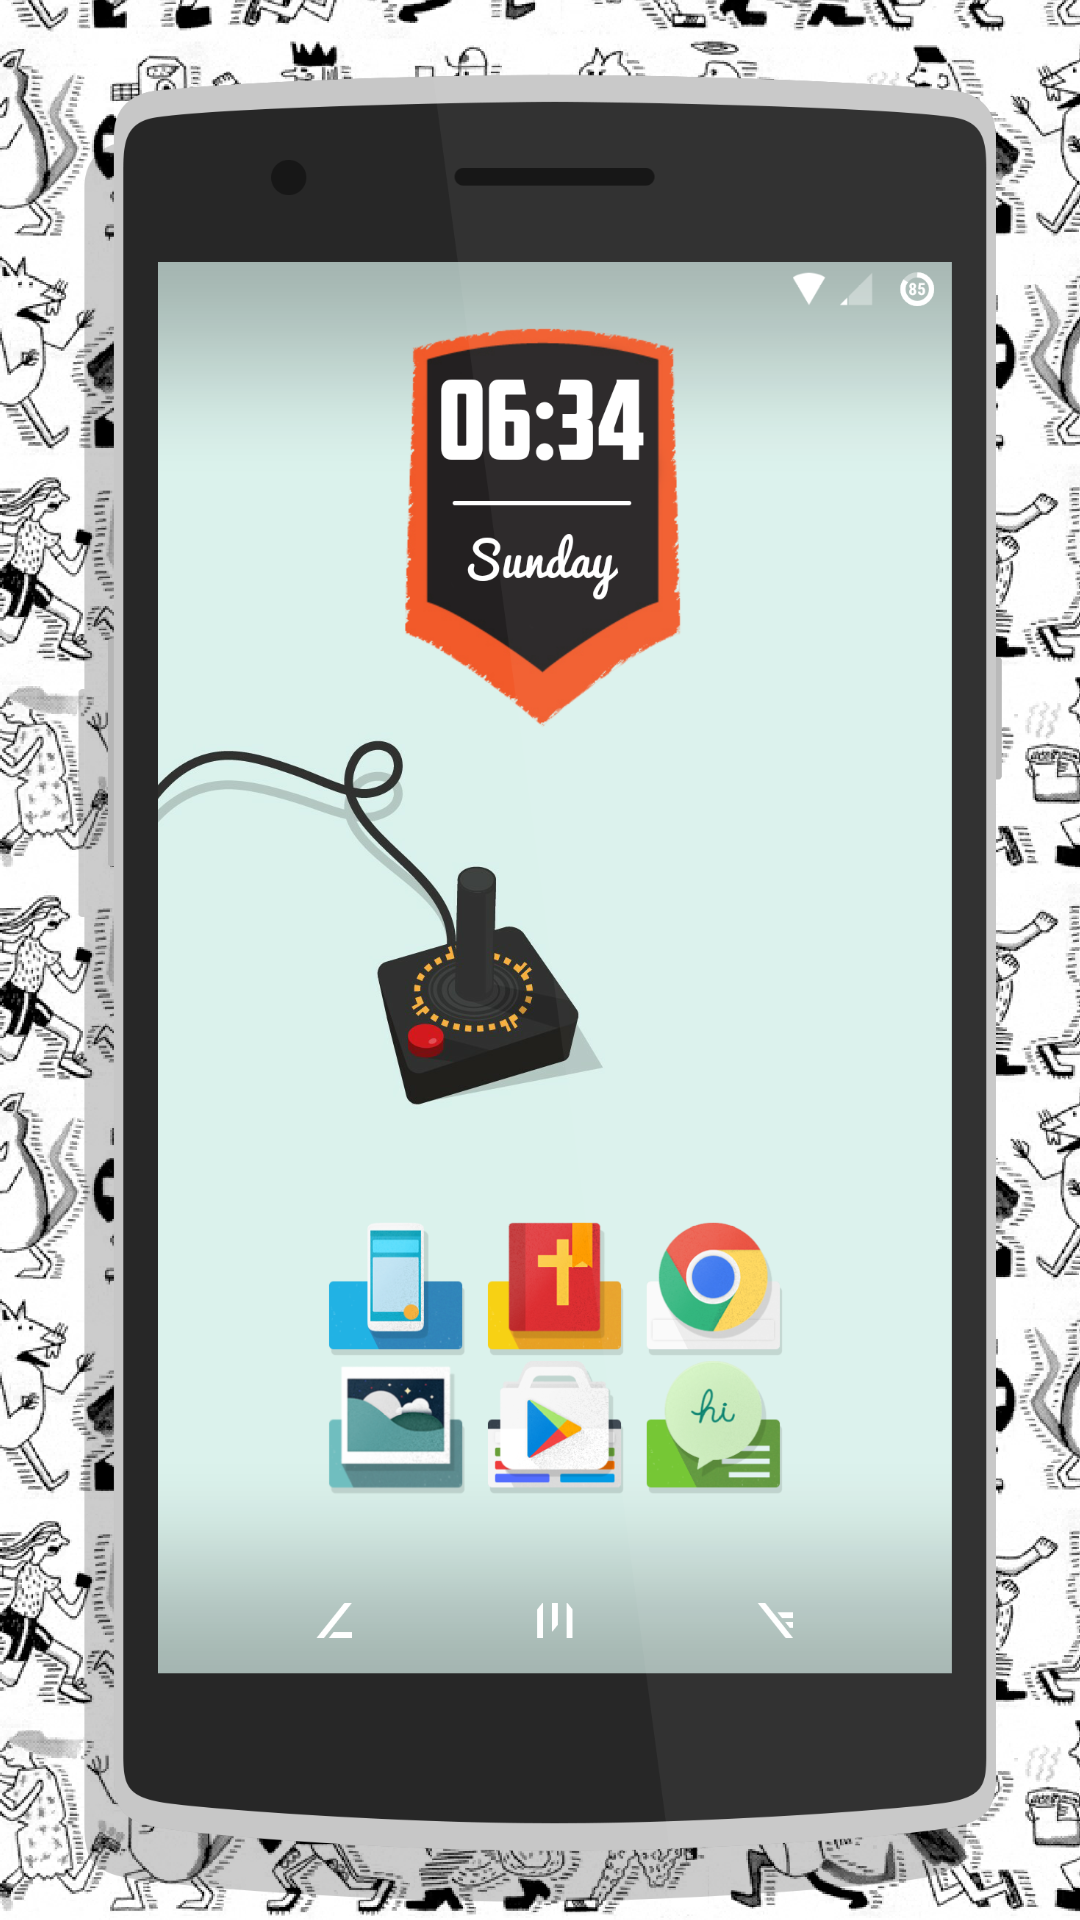 zoopreme zooper widgets androidcustomization wallpaper